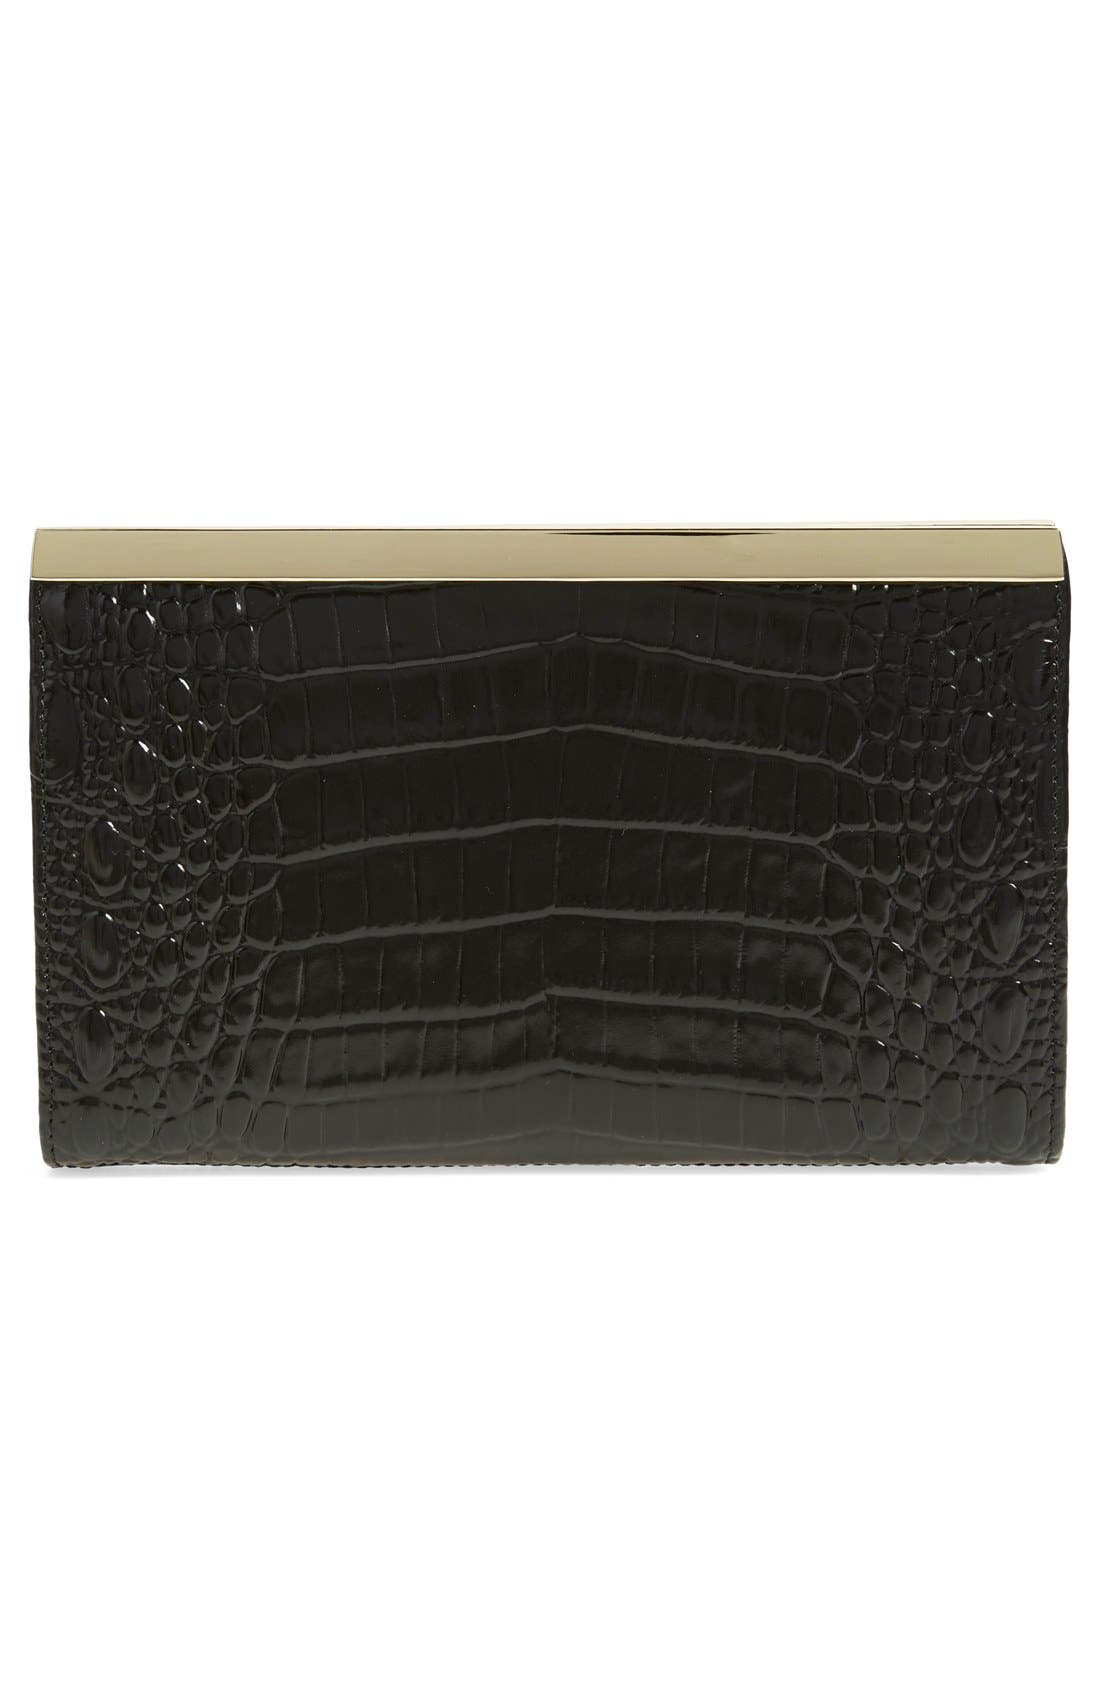 'Tillie' Croc Embossed Leather Clutch,                             Alternate thumbnail 6, color,                             001